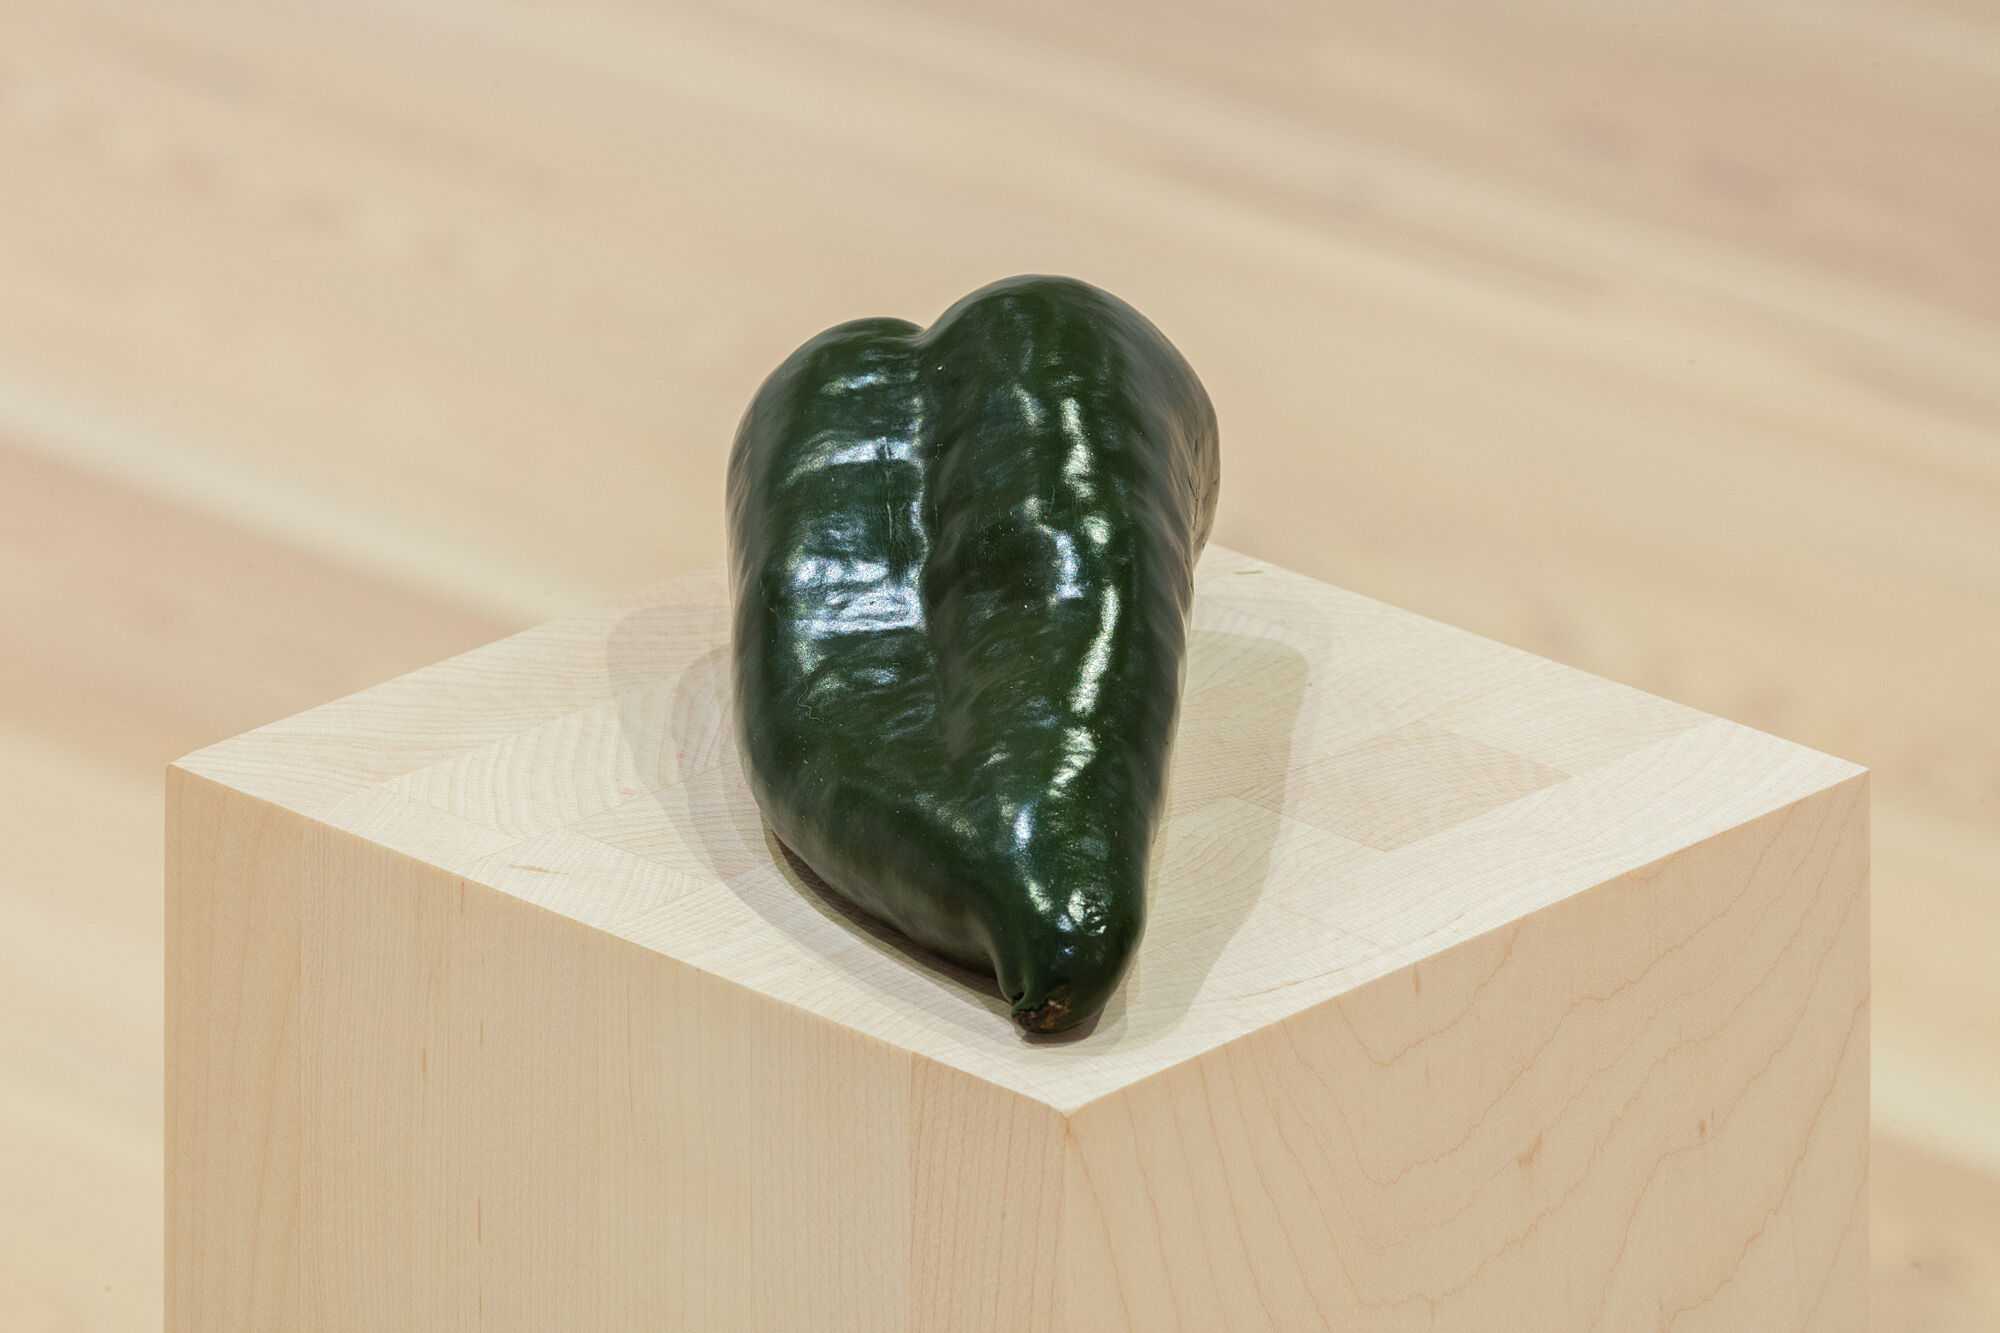 A photo of a poblano pepper on a plinth